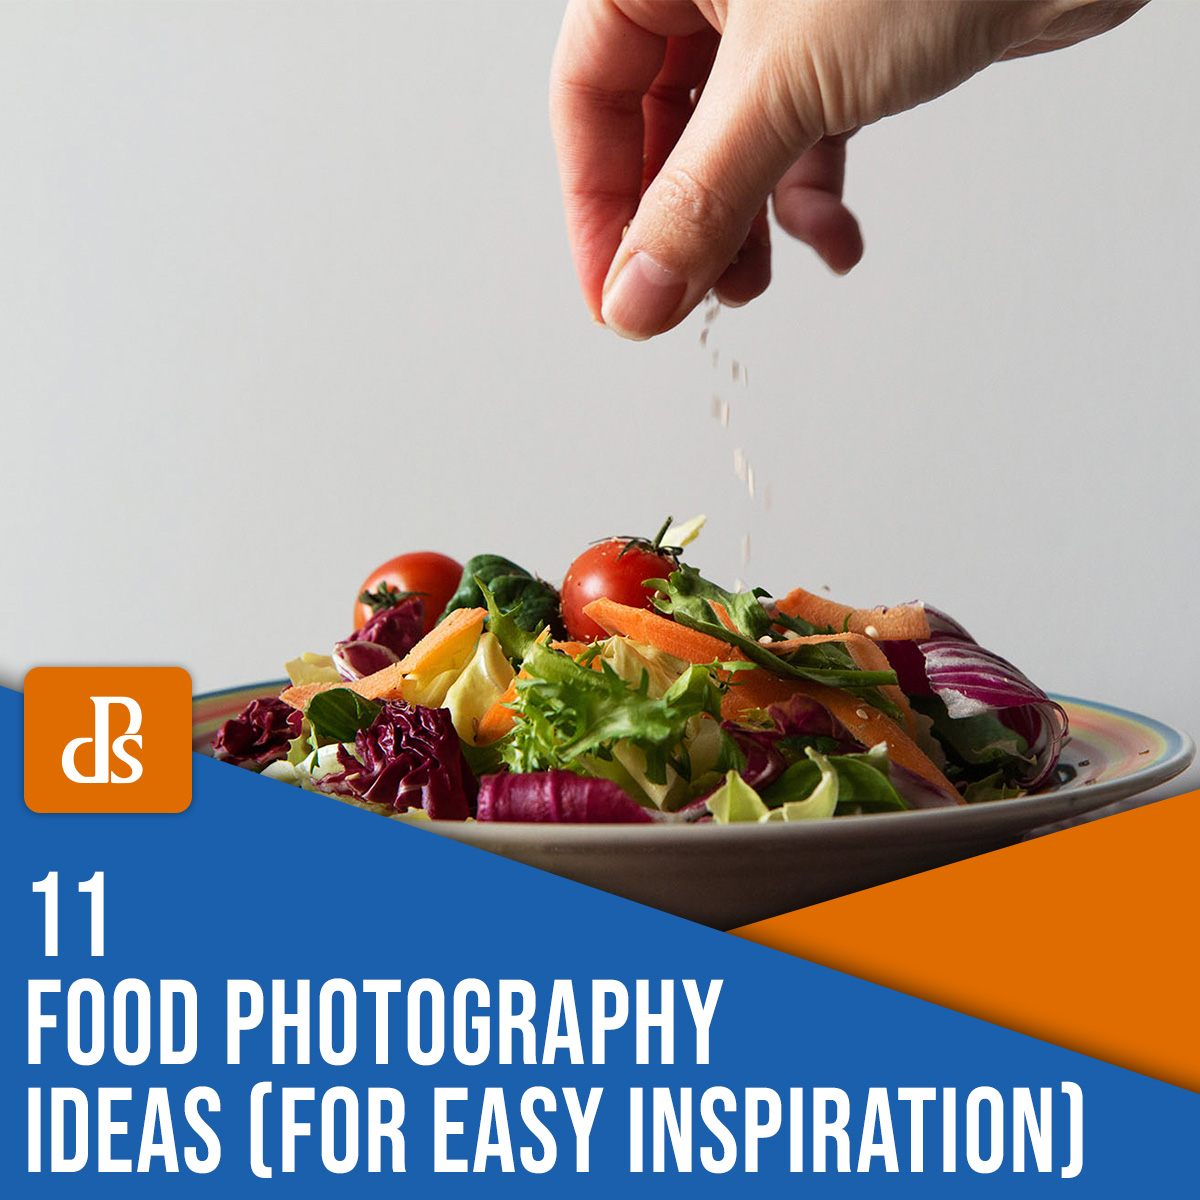 11 food photography ideas for easy inspiration